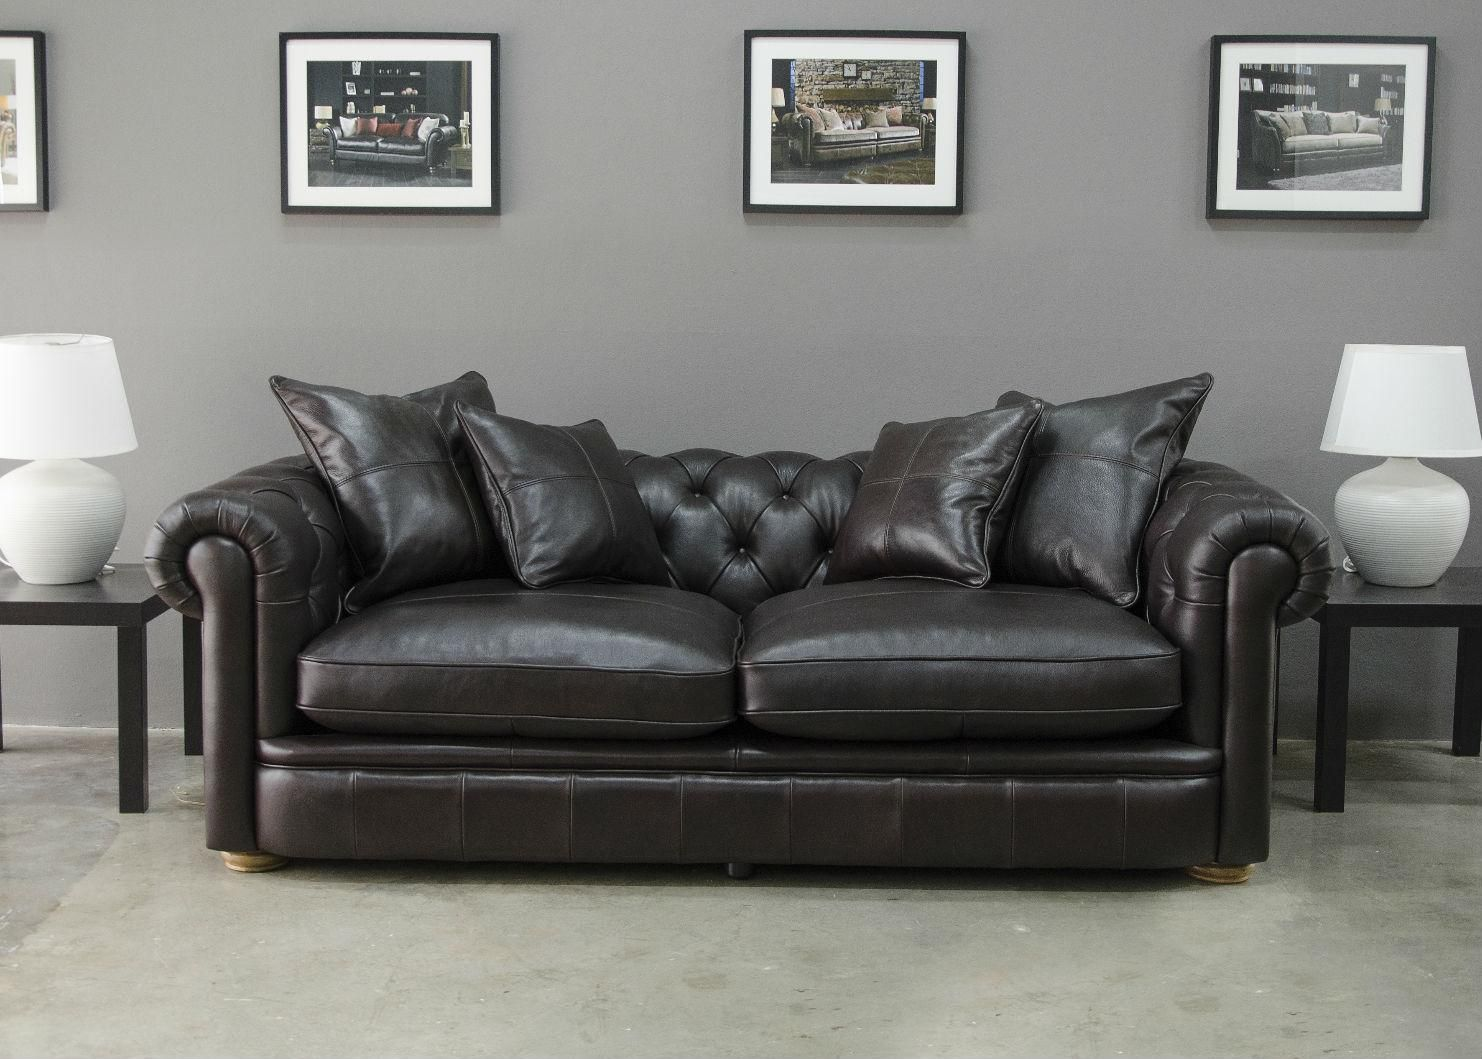 alec leather sofa collection grey sectional bed alexander and james abraham from